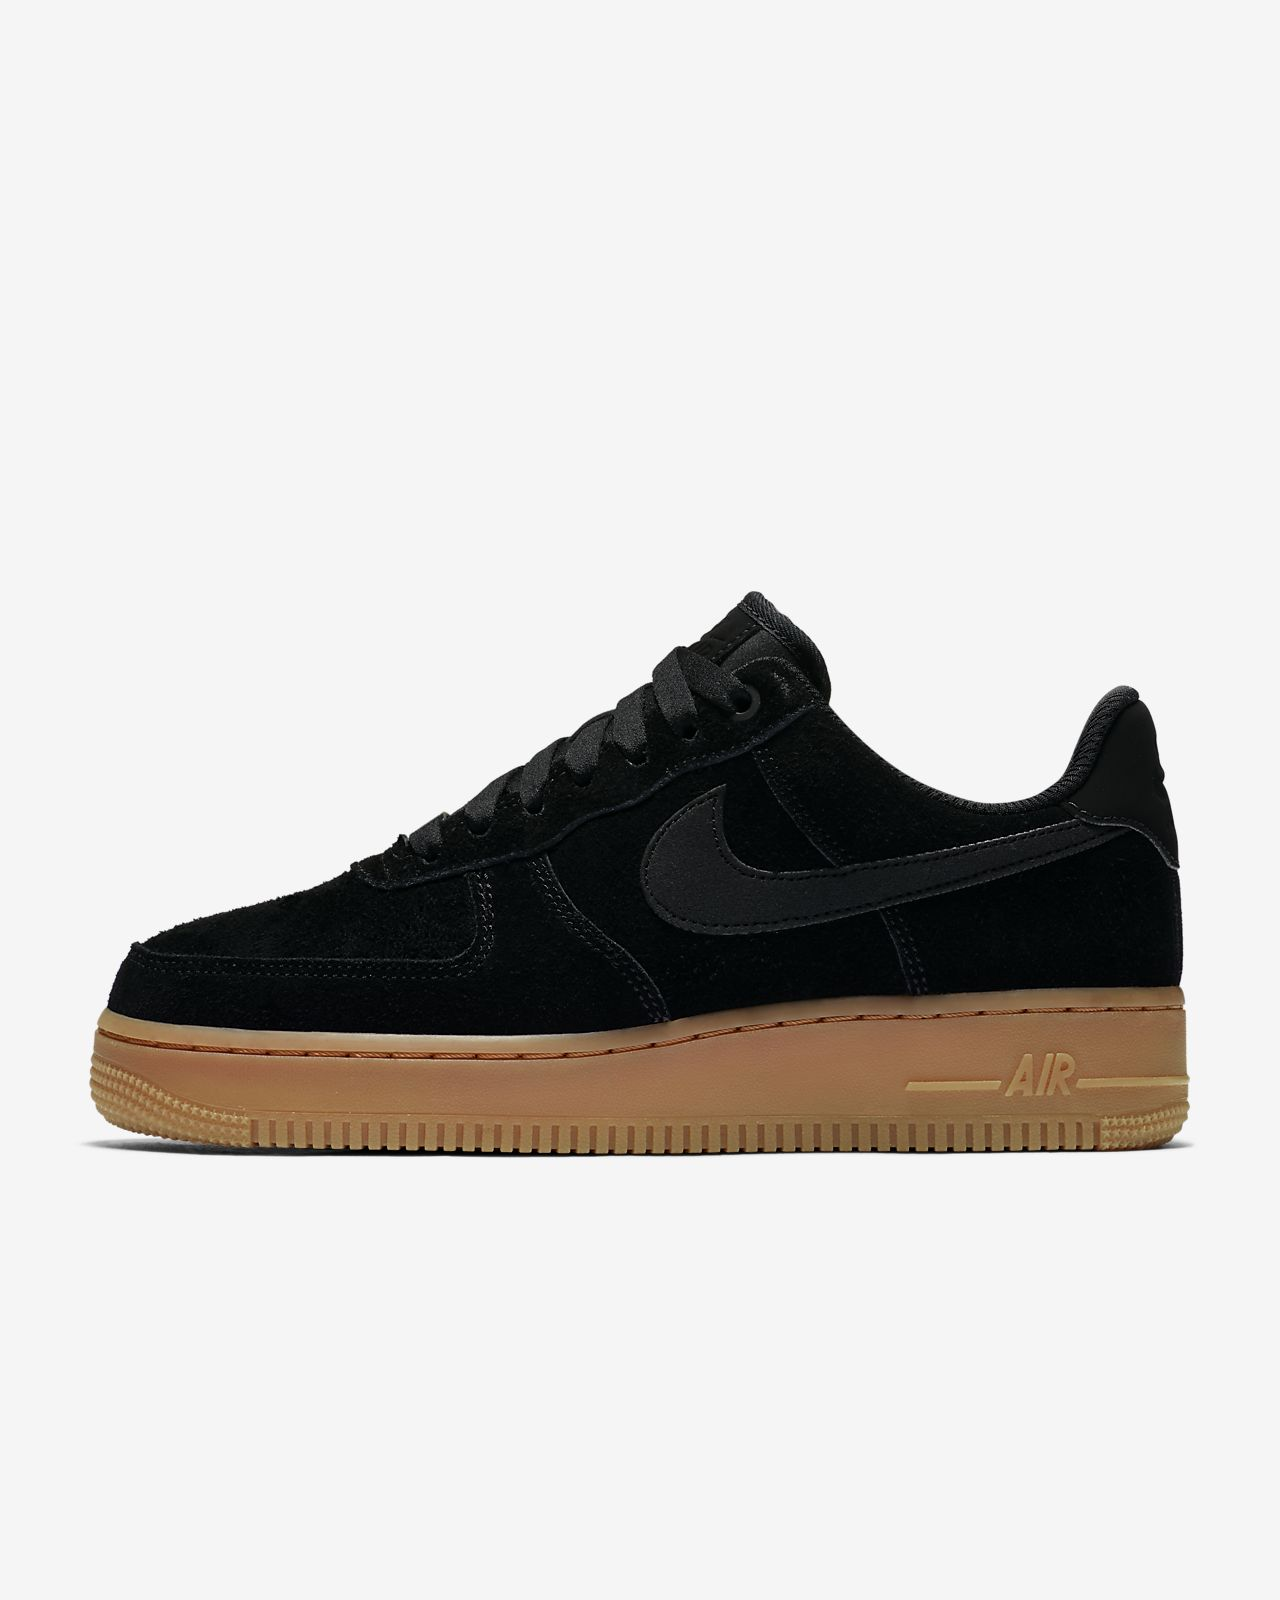 Nike Air Force 1, '07 Suede